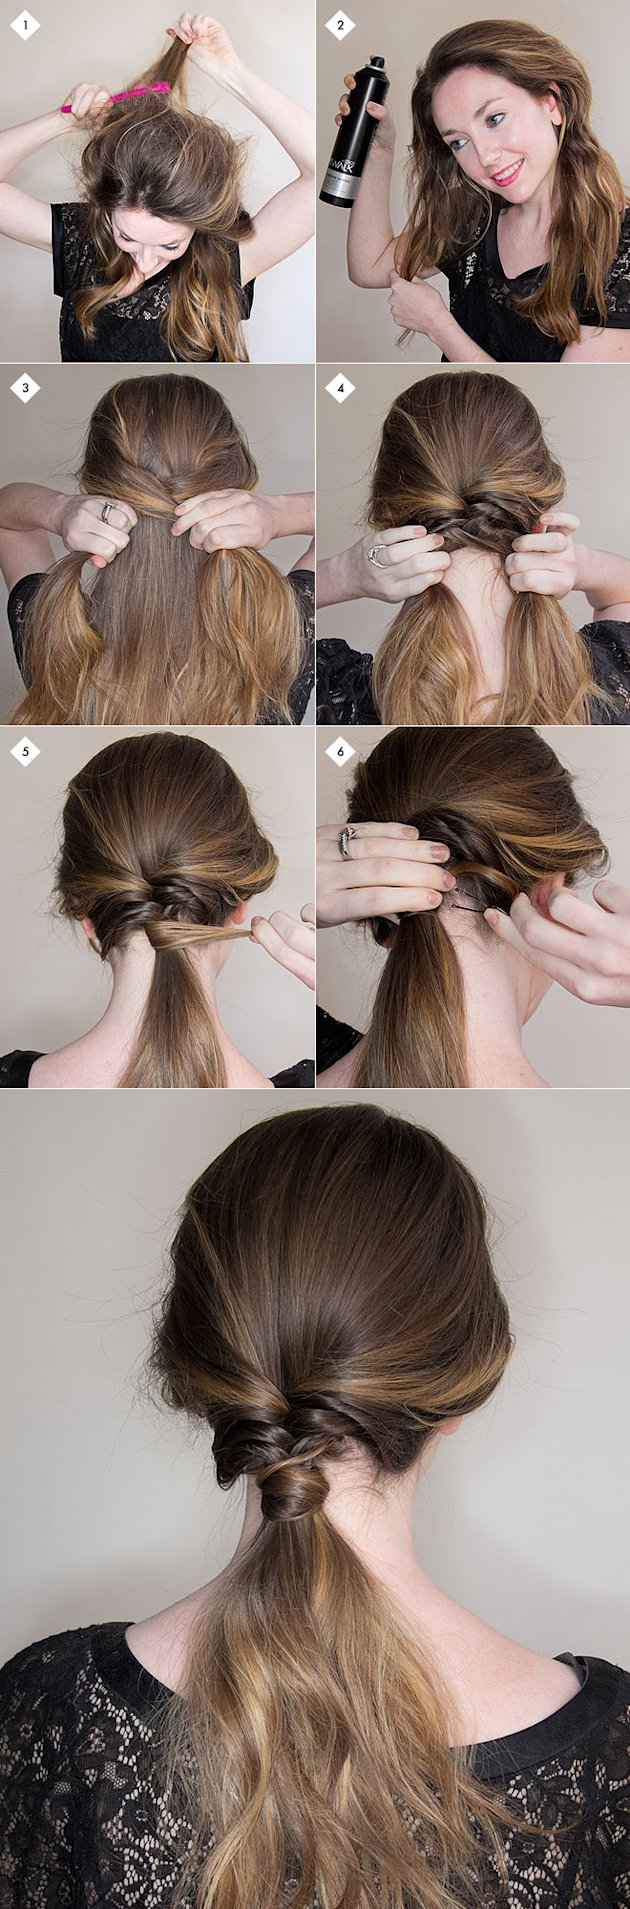 Feminine Blog: Chic, Simple Hairstyles Anyone Can Do